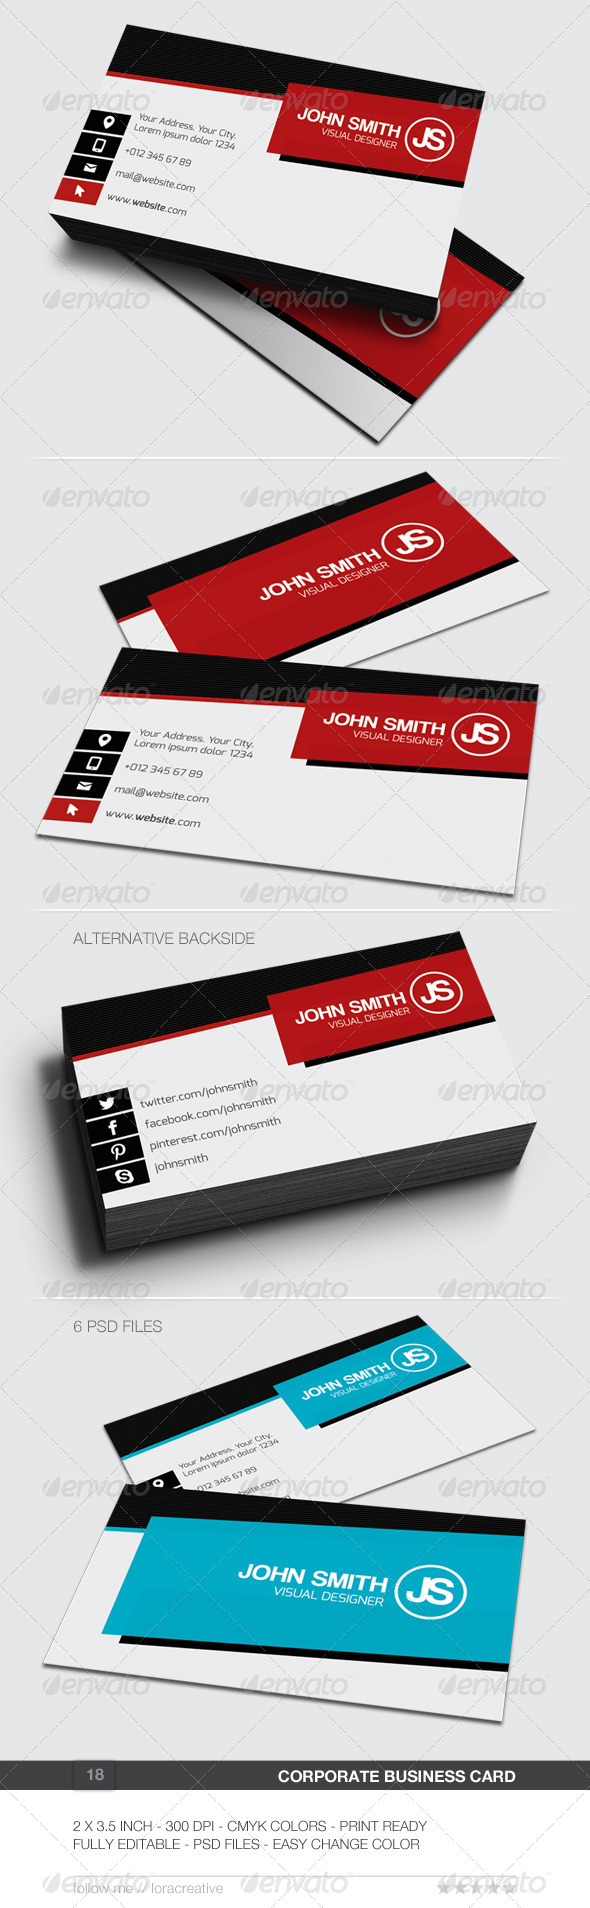 GraphicRiver Corporate Business Card 18 6202054